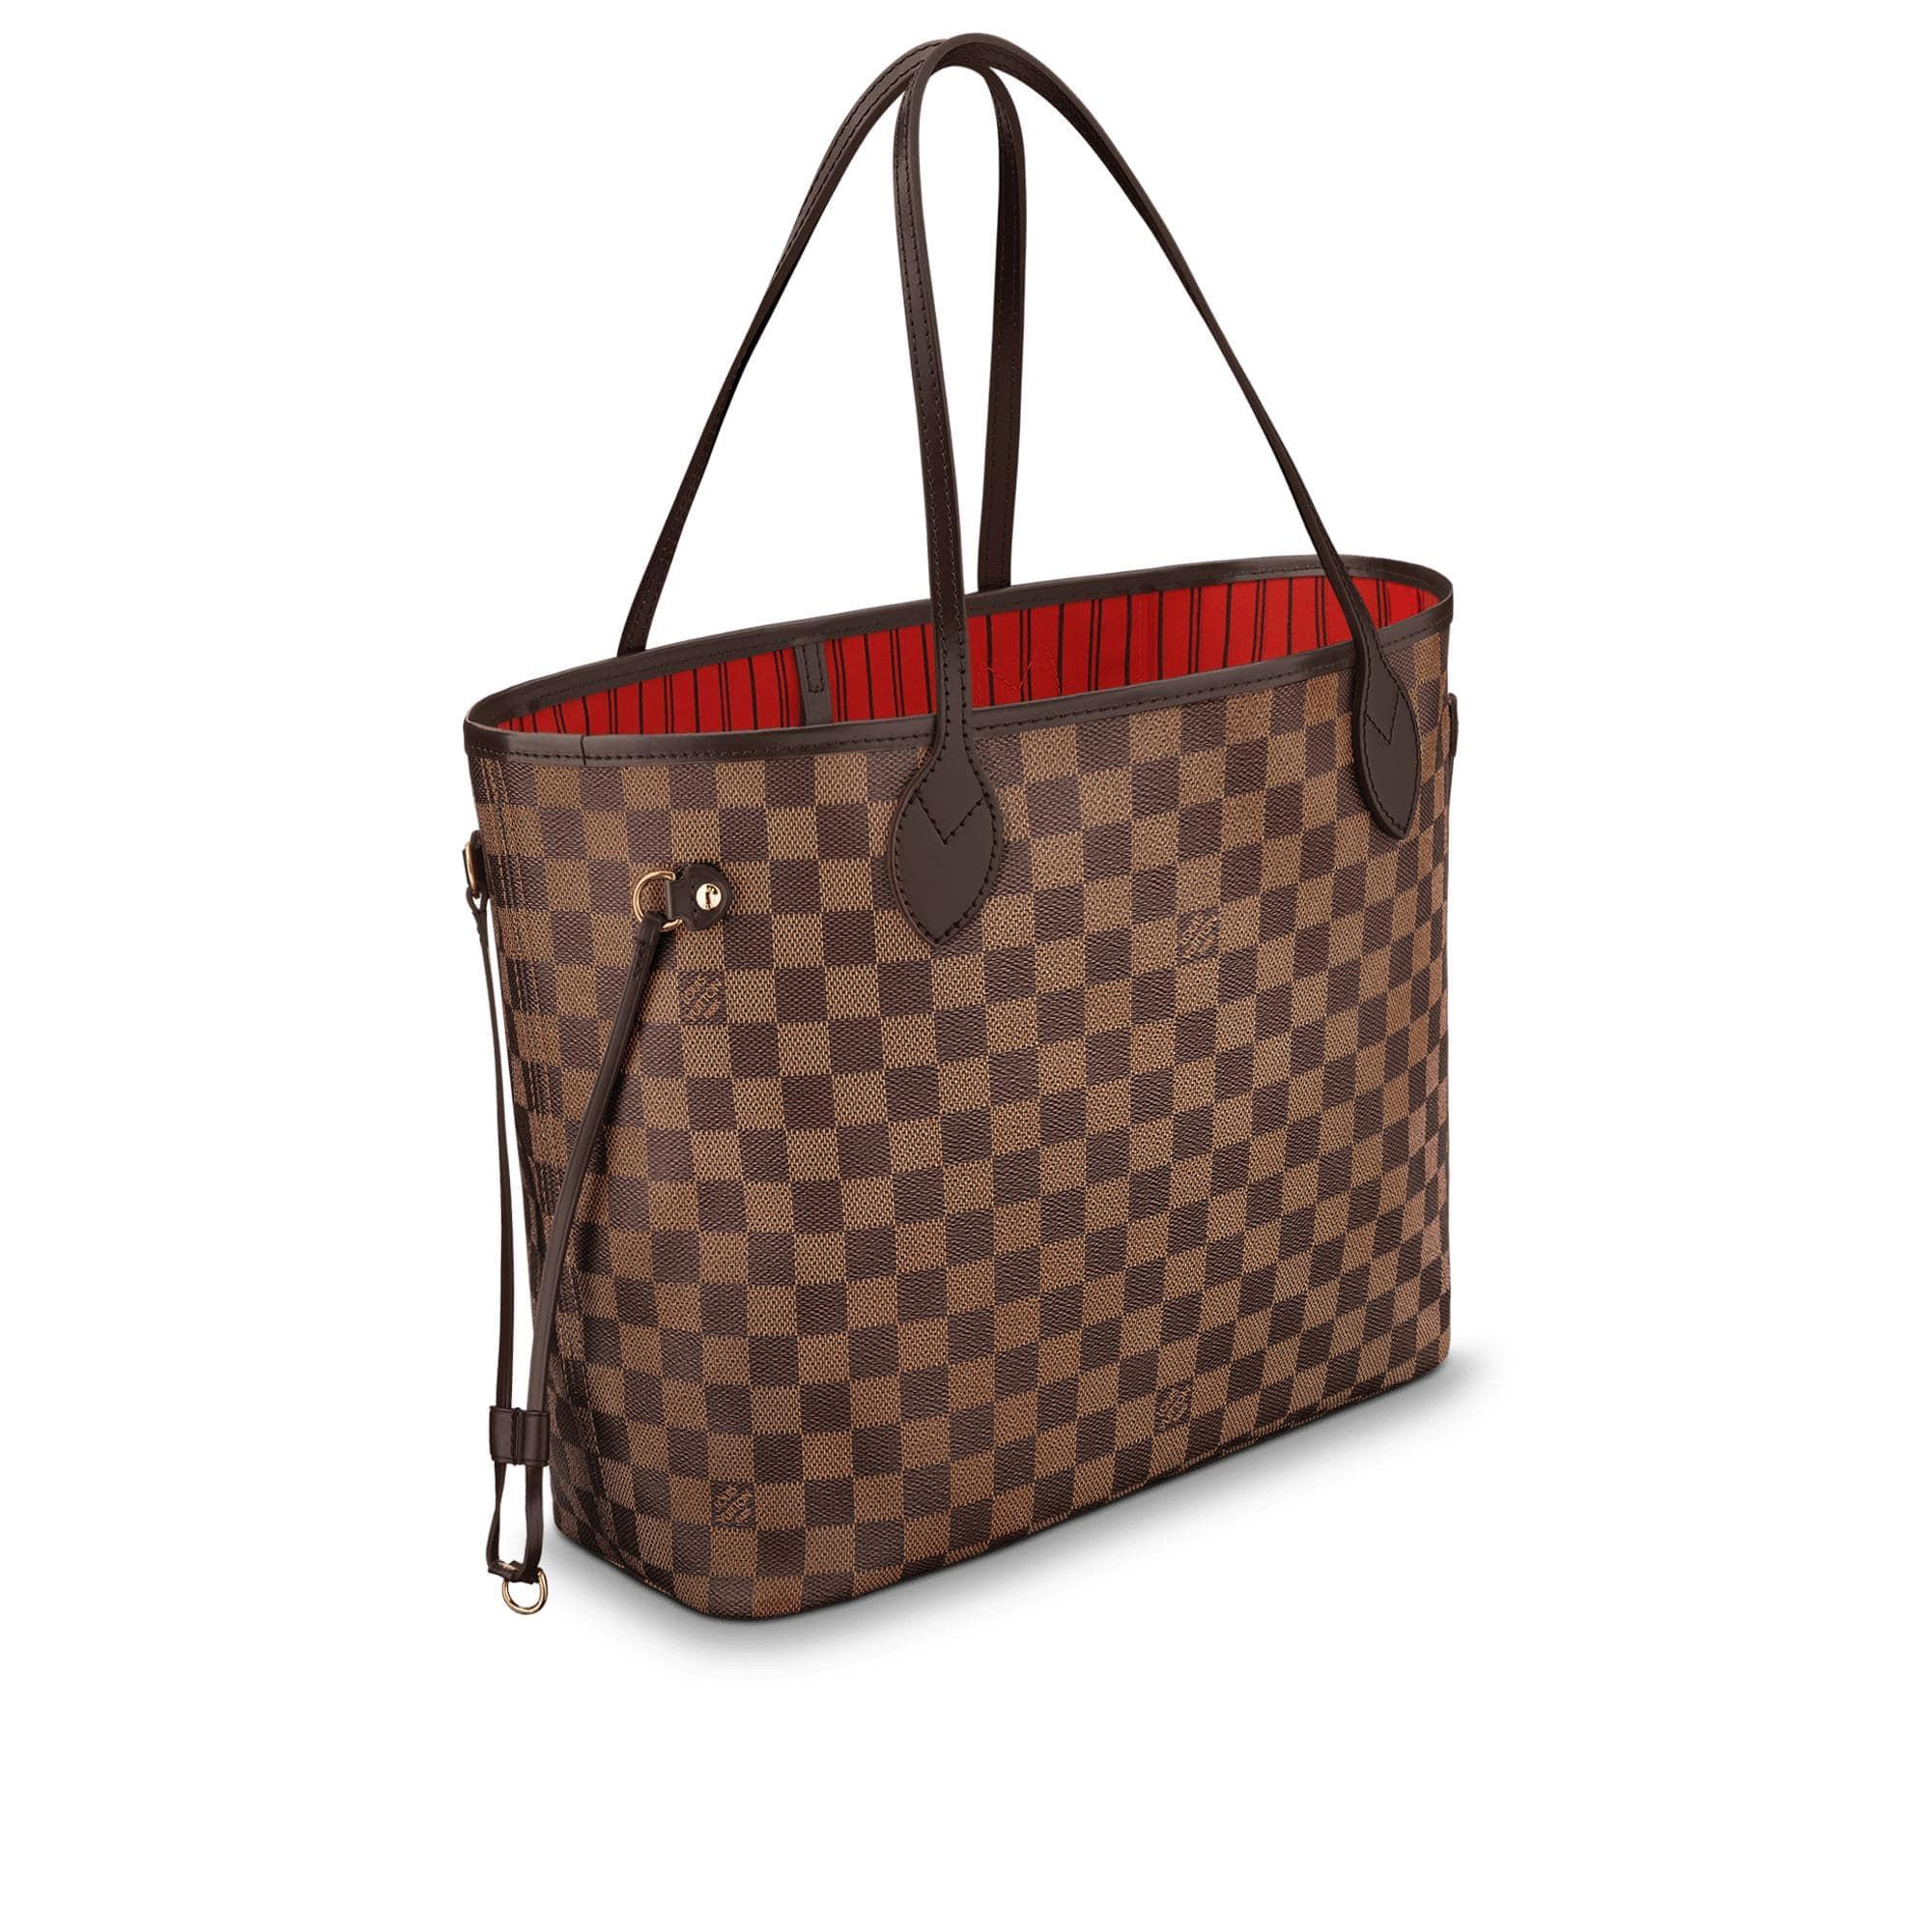 louis-vuitton-neverfull-mm-damier-ebene-handbags--N41358_PM1_Side view.jpg